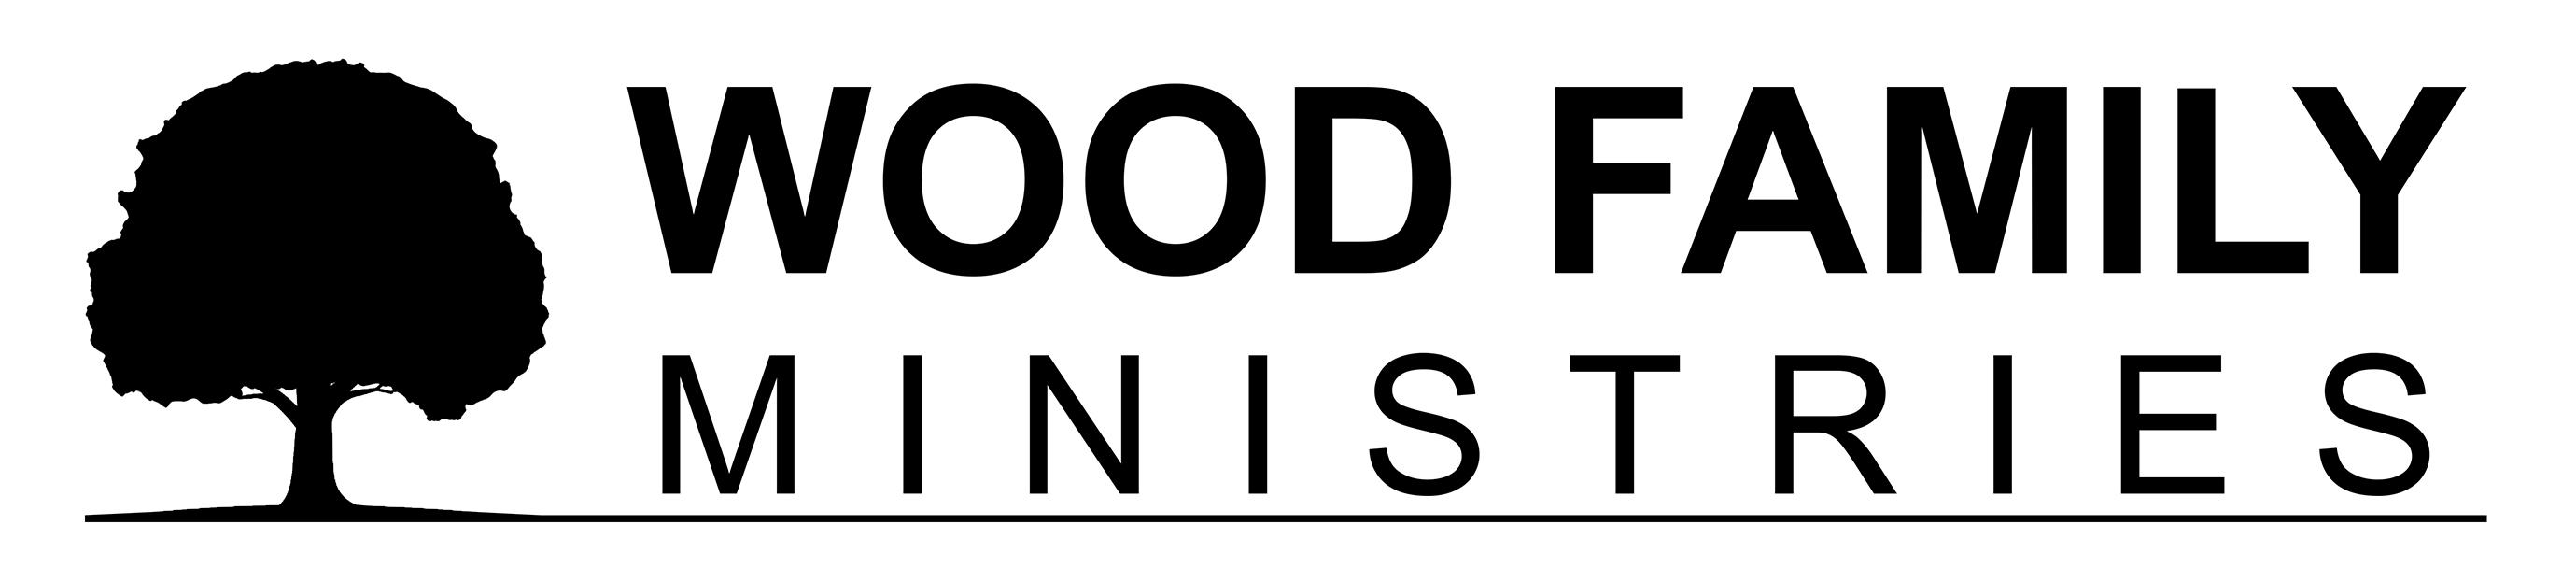 Wood Family Ministries